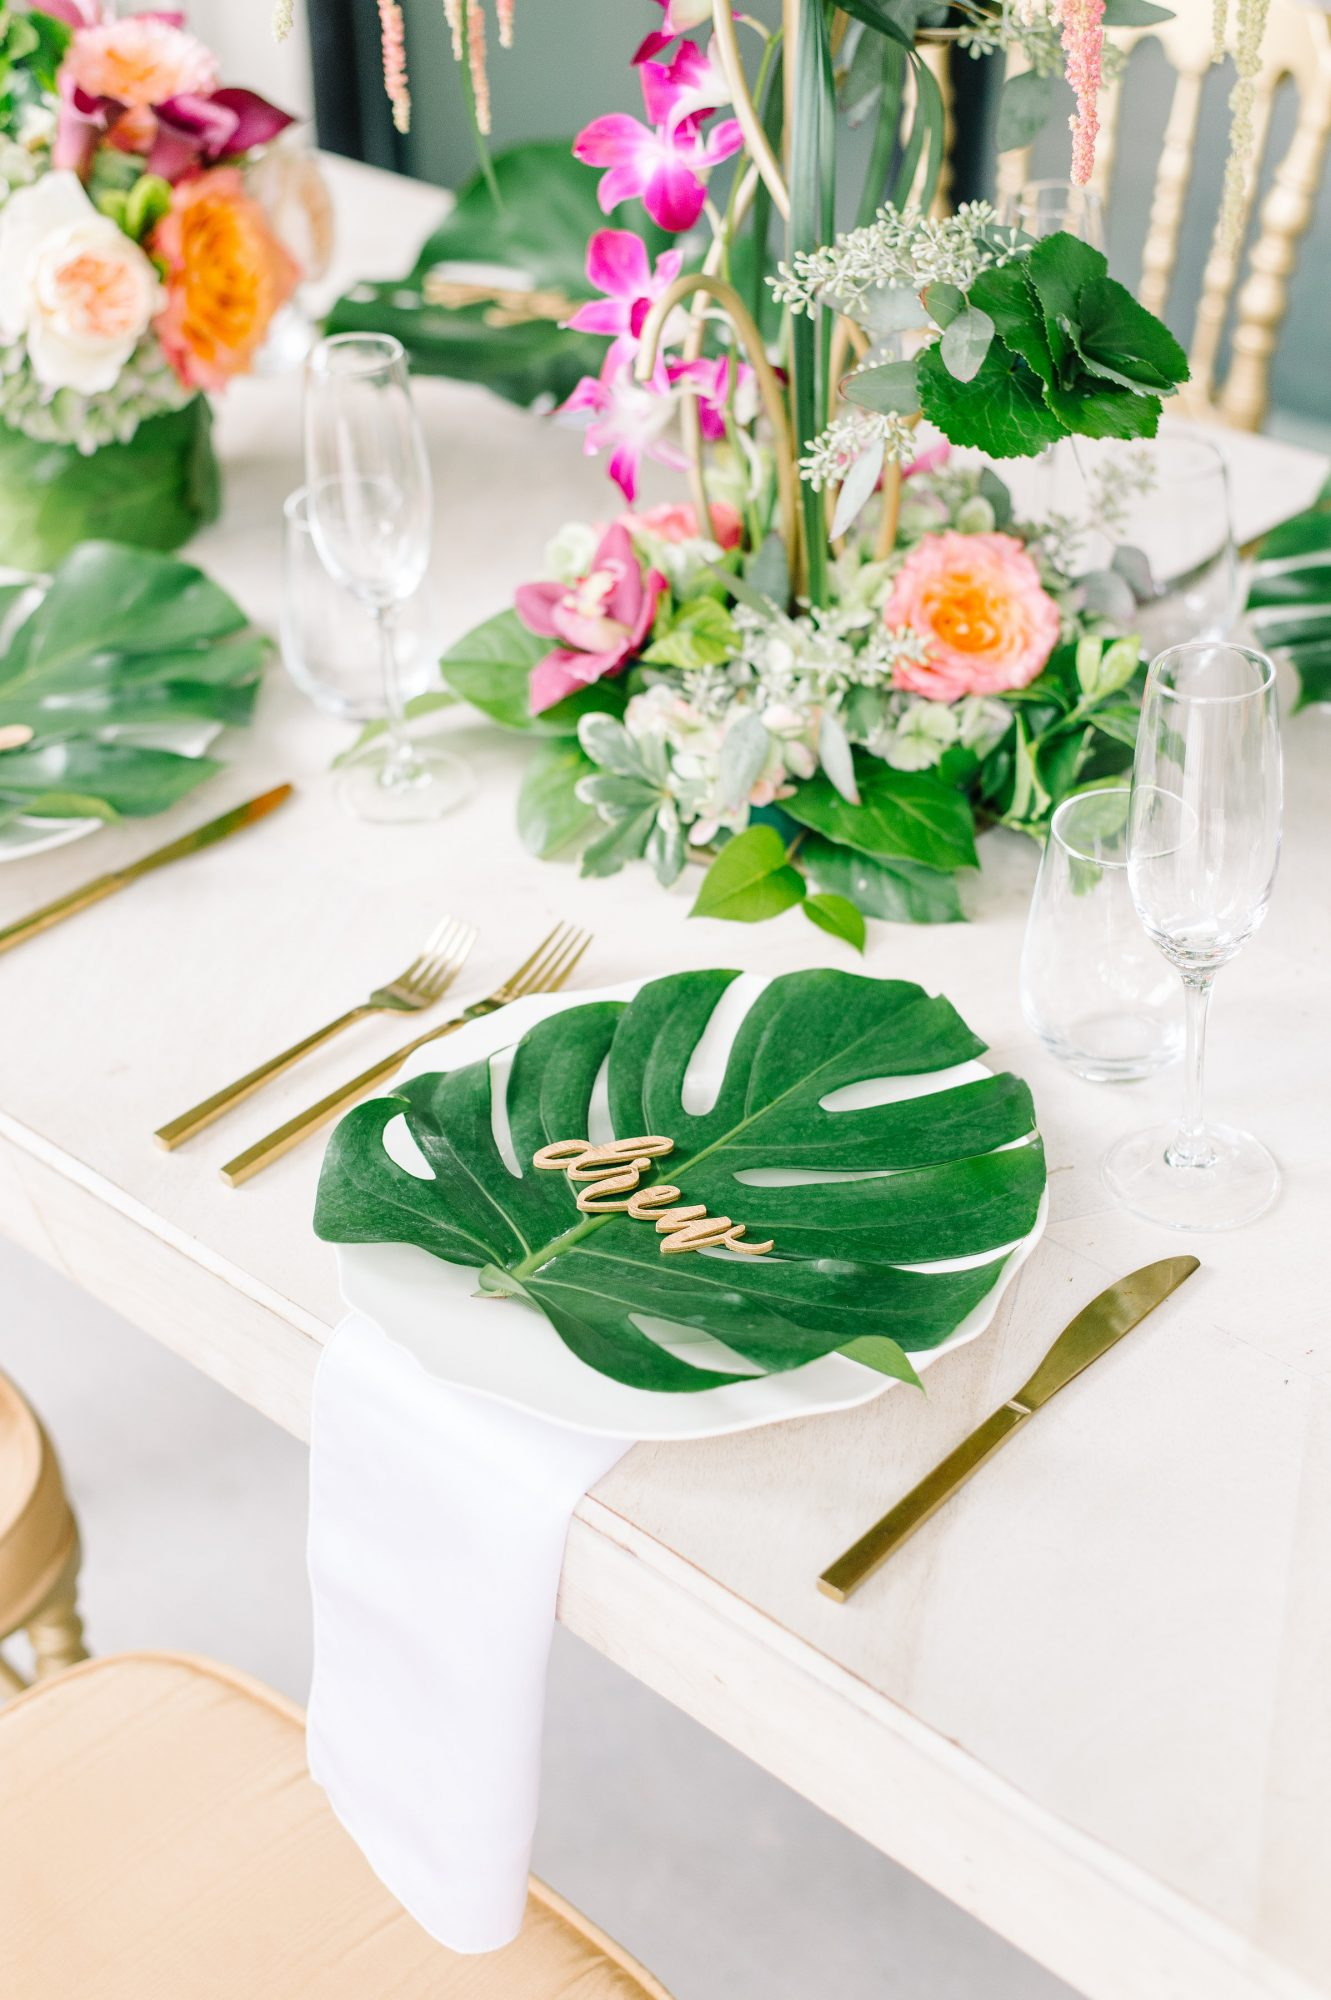 Tropical Place Setting with Palm Leaf on Plate